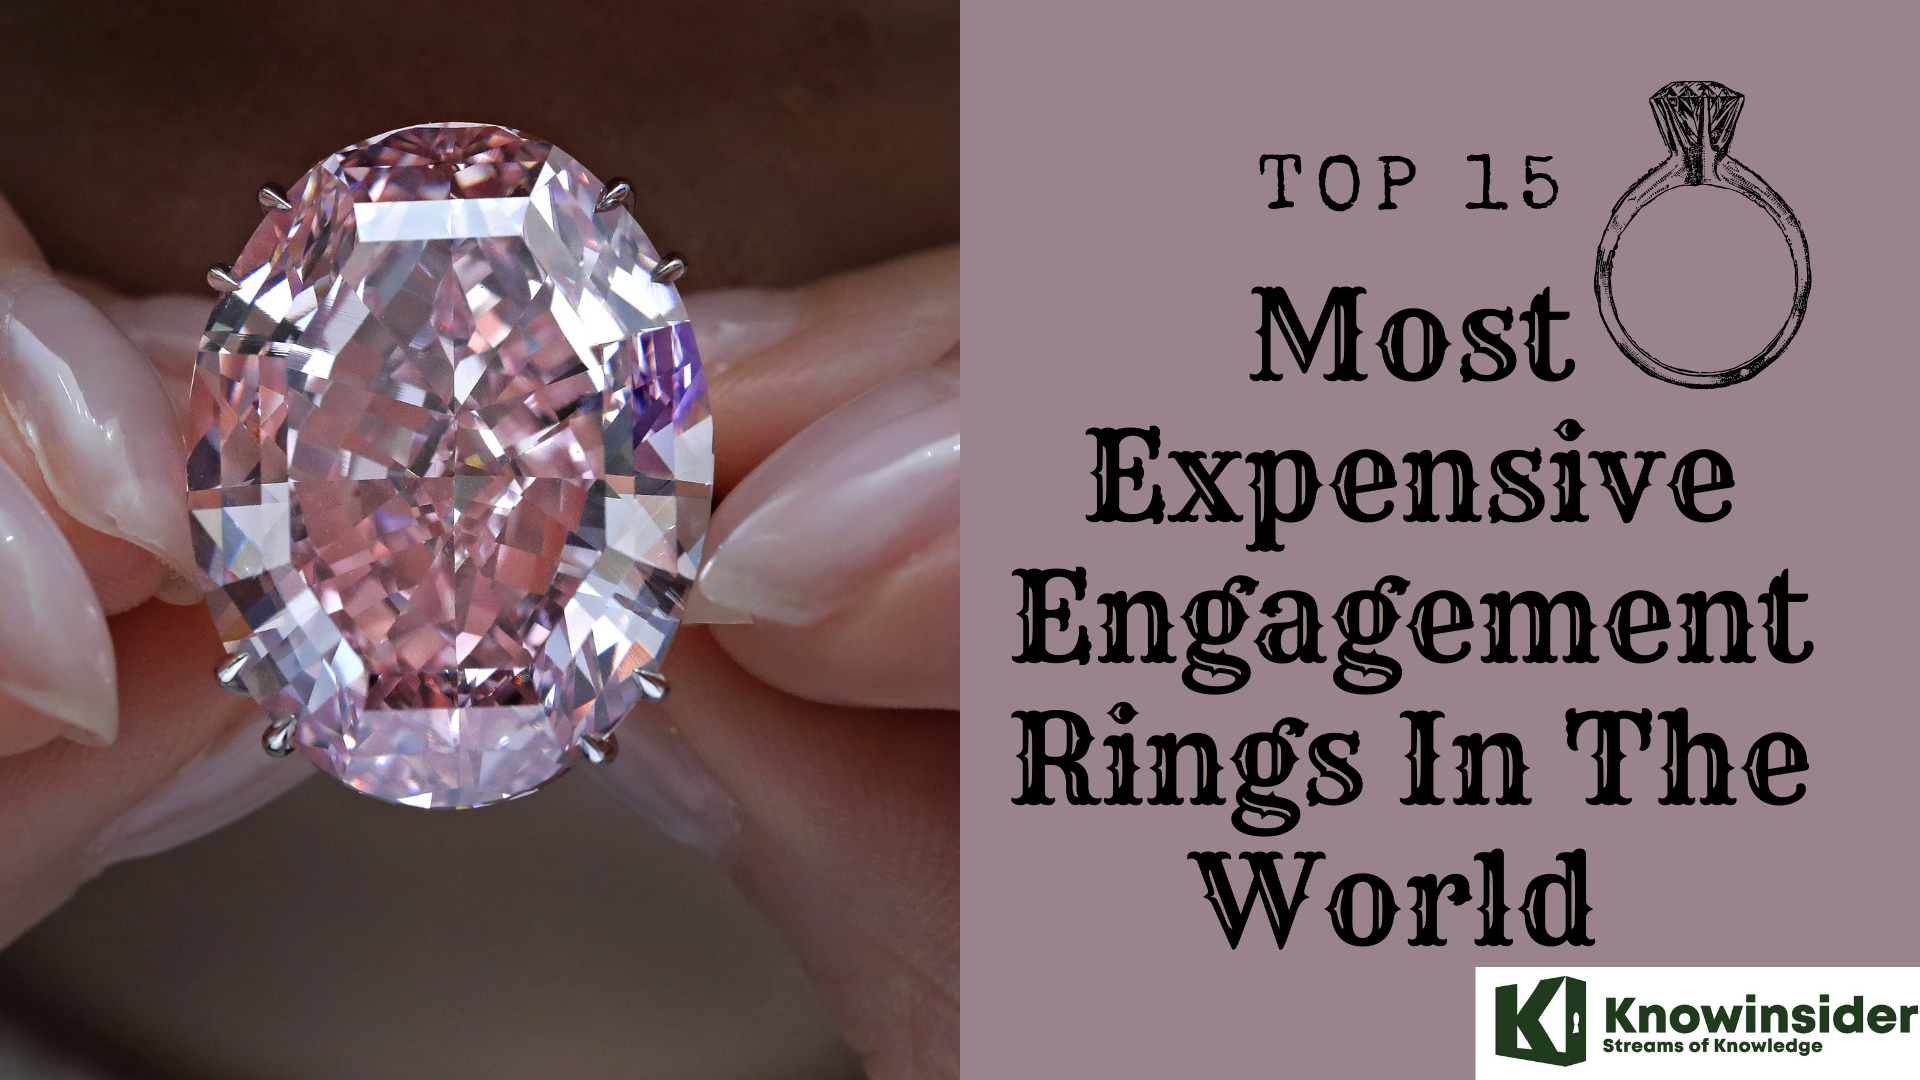 Top 15 Most Expensive Engagement Rings In The World